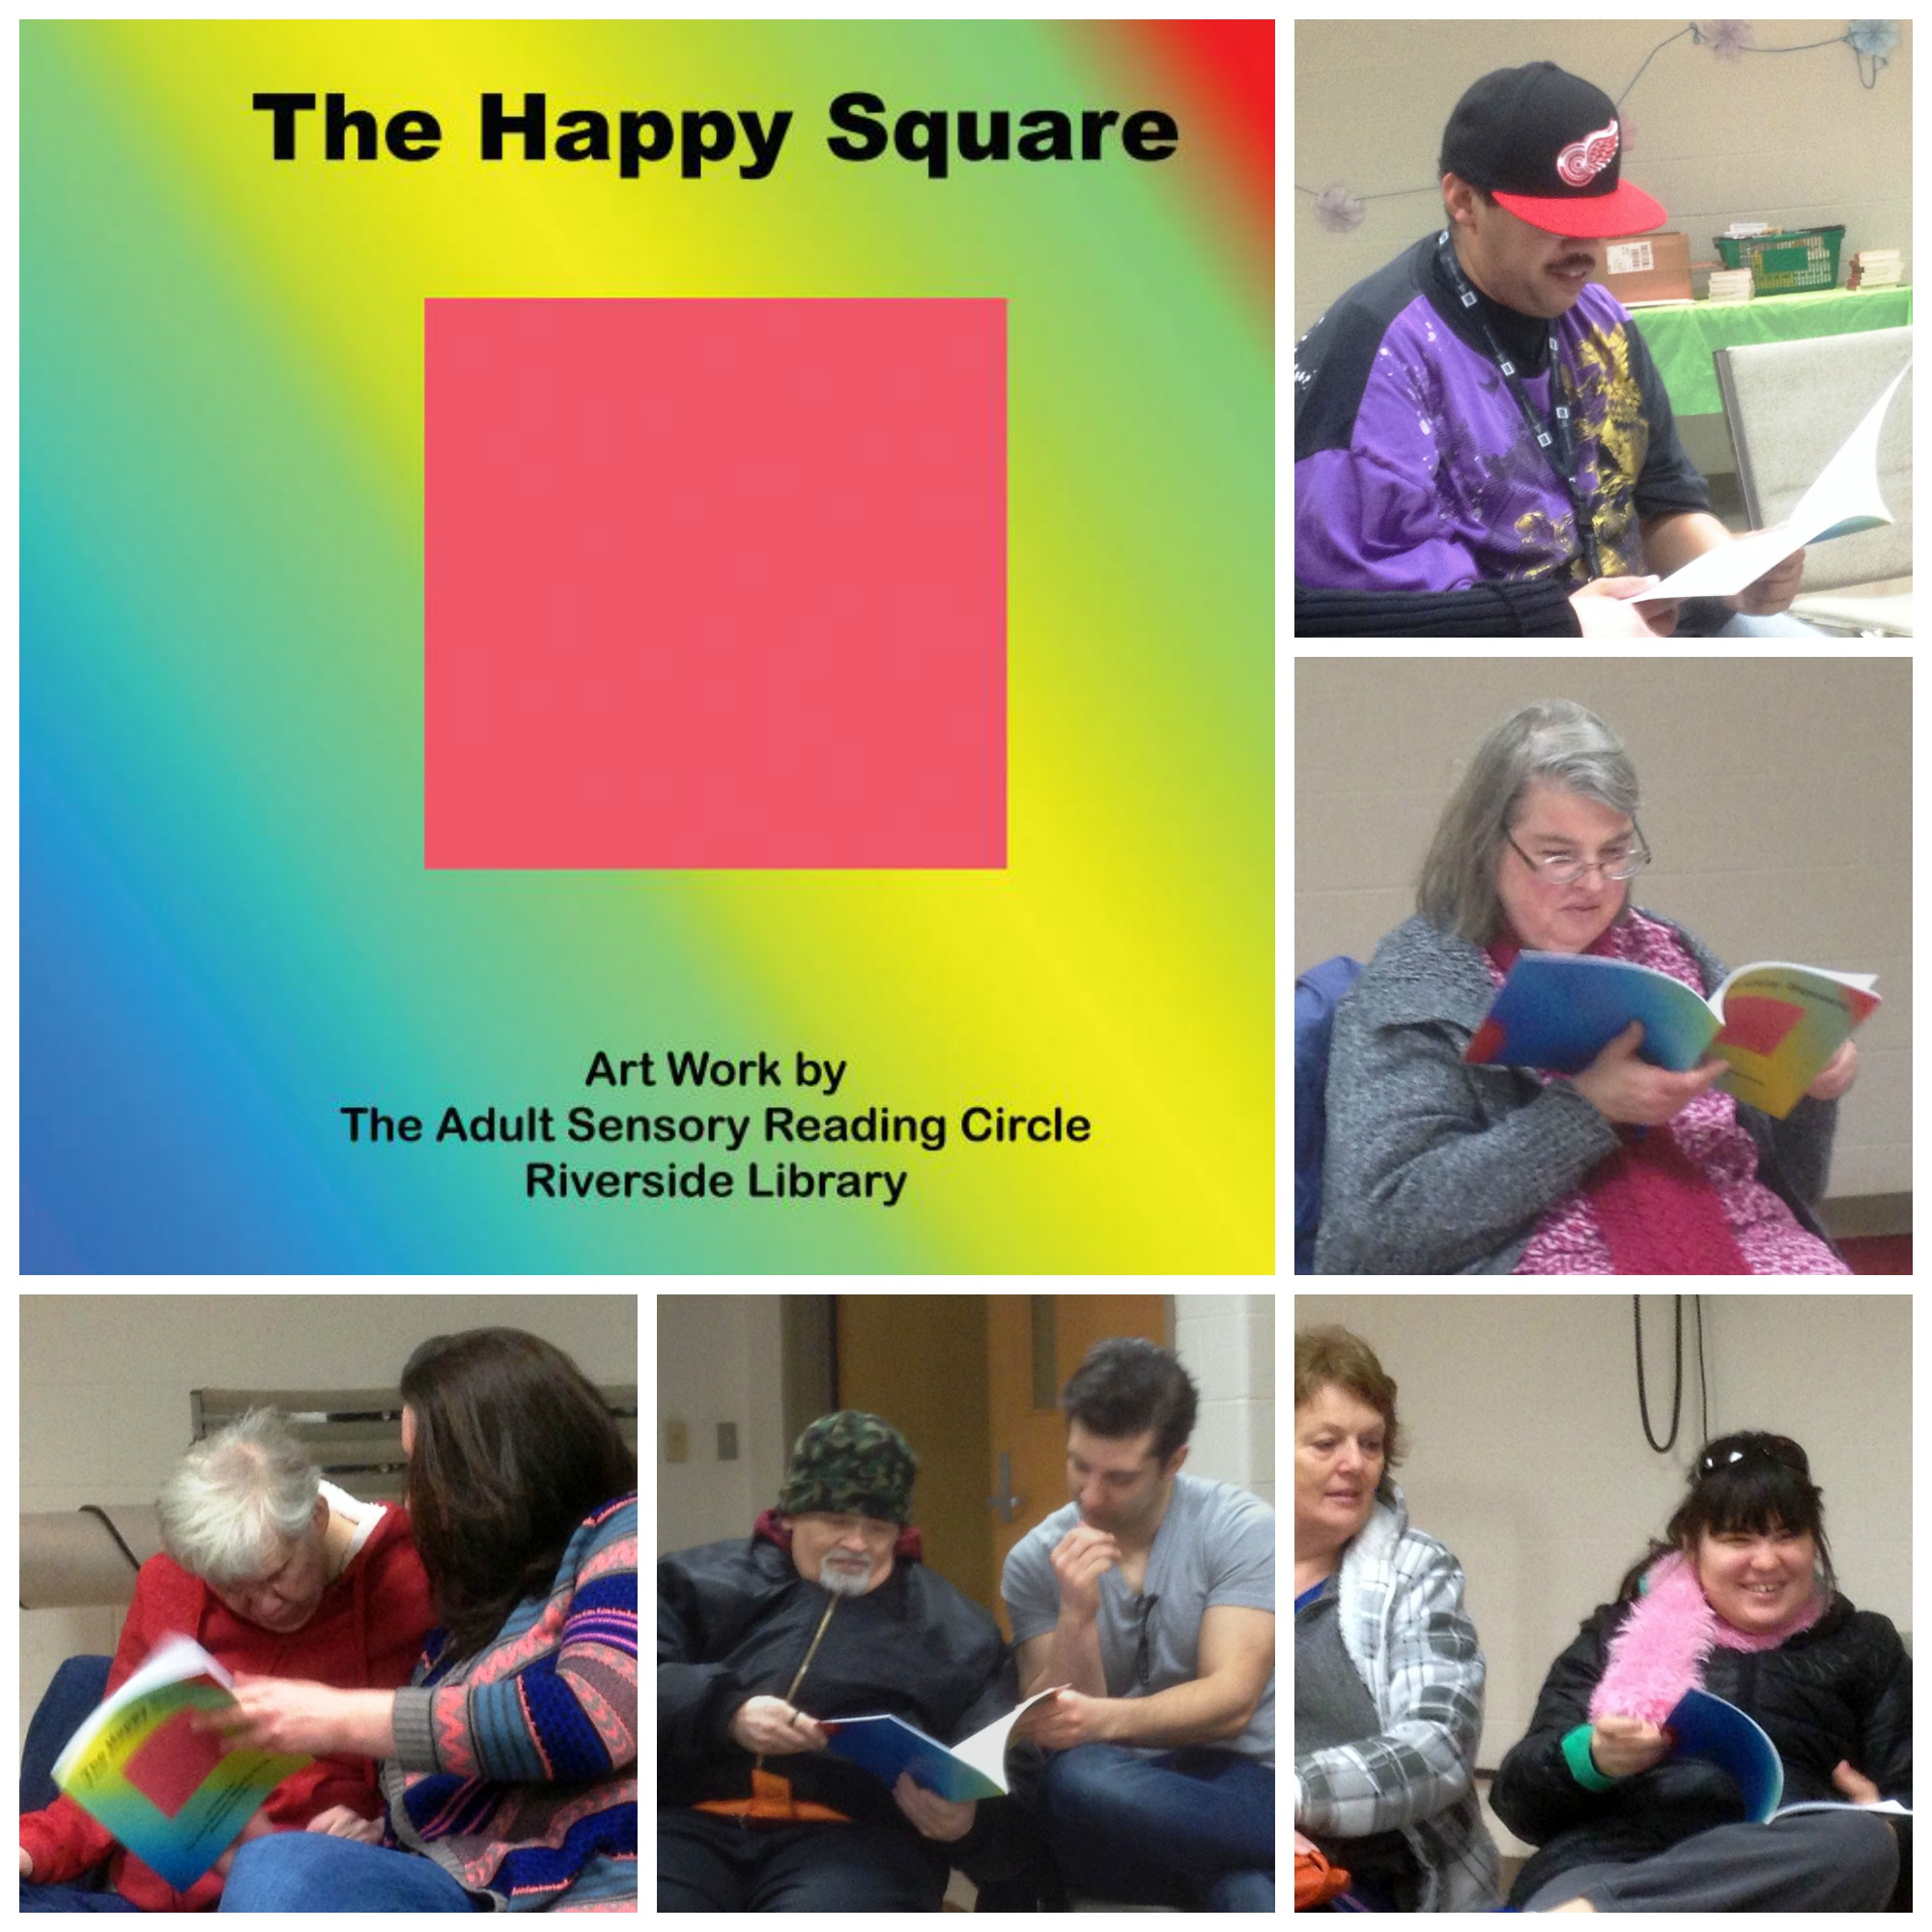 Members of the Riverside Adult Sensory Reading Circle reading their book for the first time.